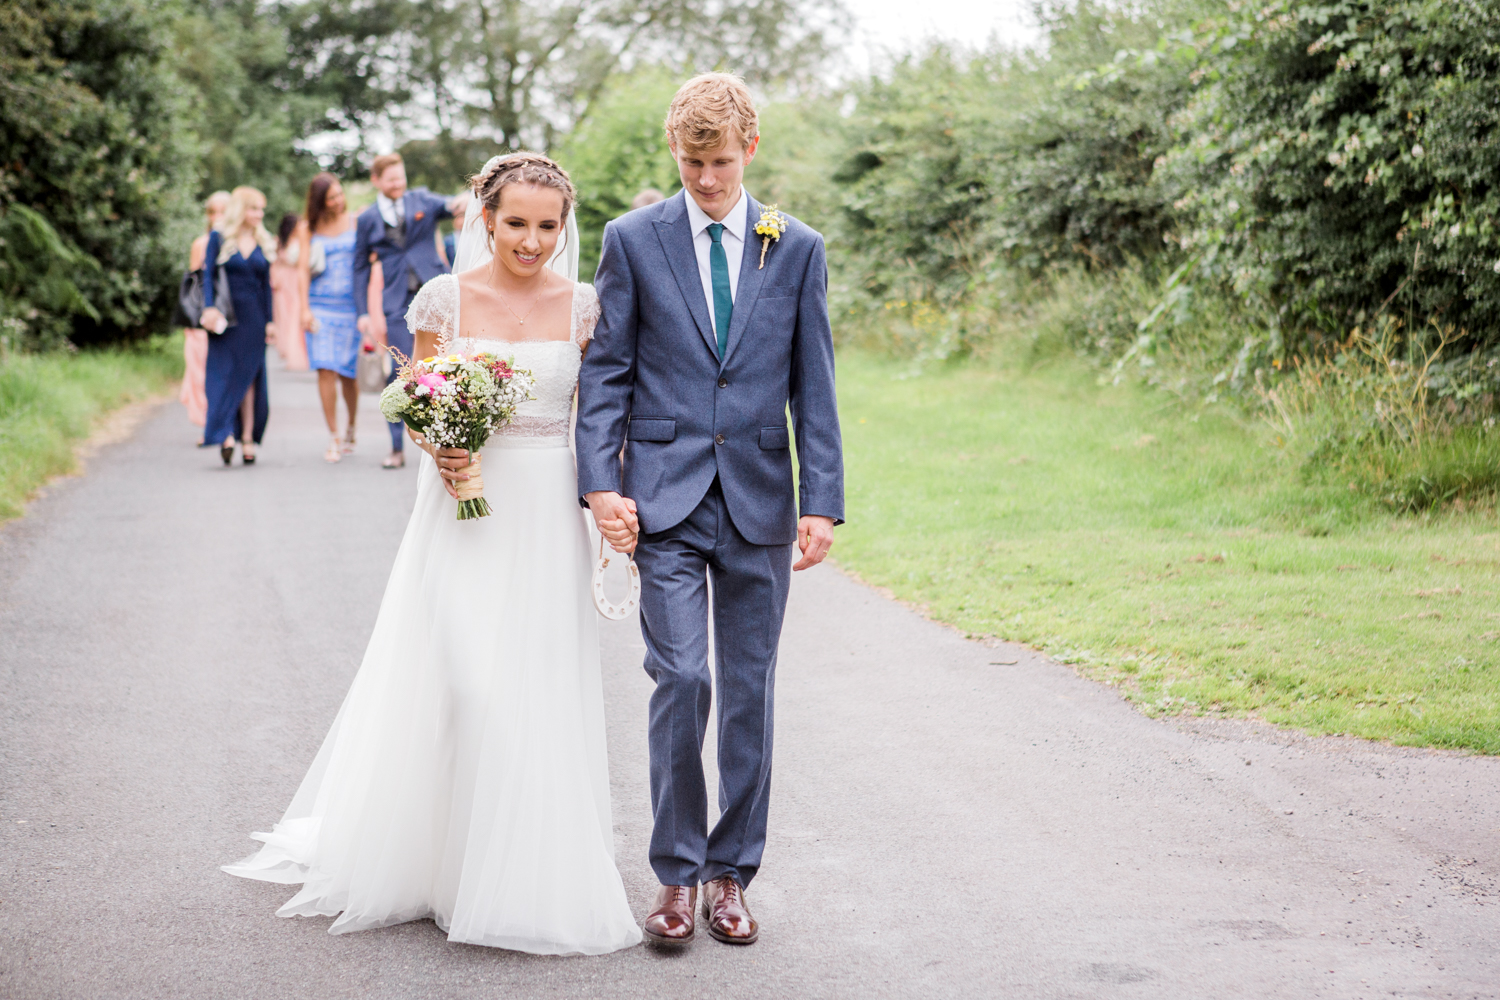 060Lotti & Dave marquee wedding Sophie Evans Photography West Midlands reportage wedding photography.jpg